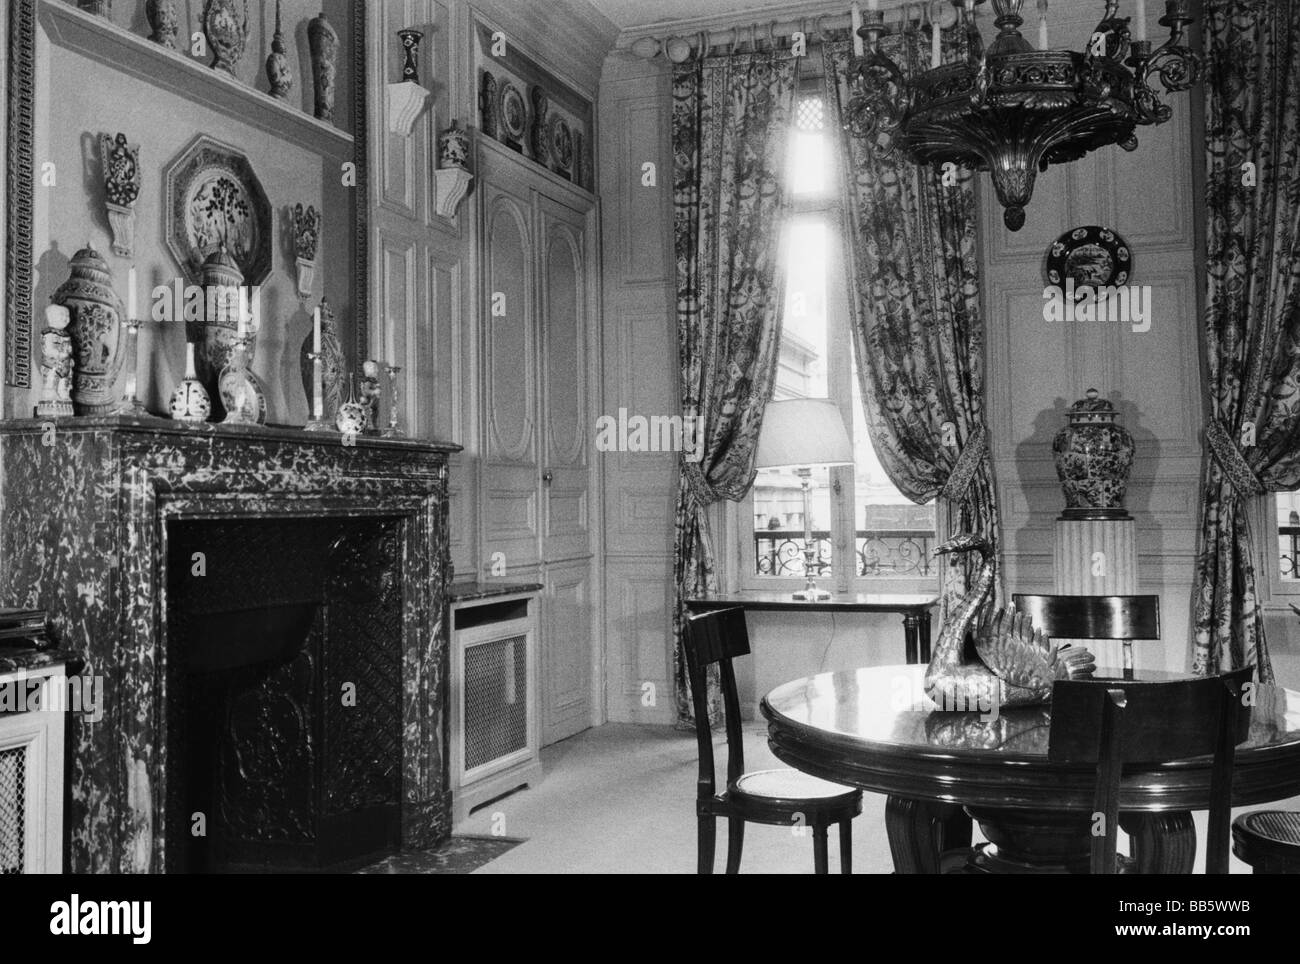 Salon With Fireplace Stockfotos & Salon With Fireplace Bilder - Alamy